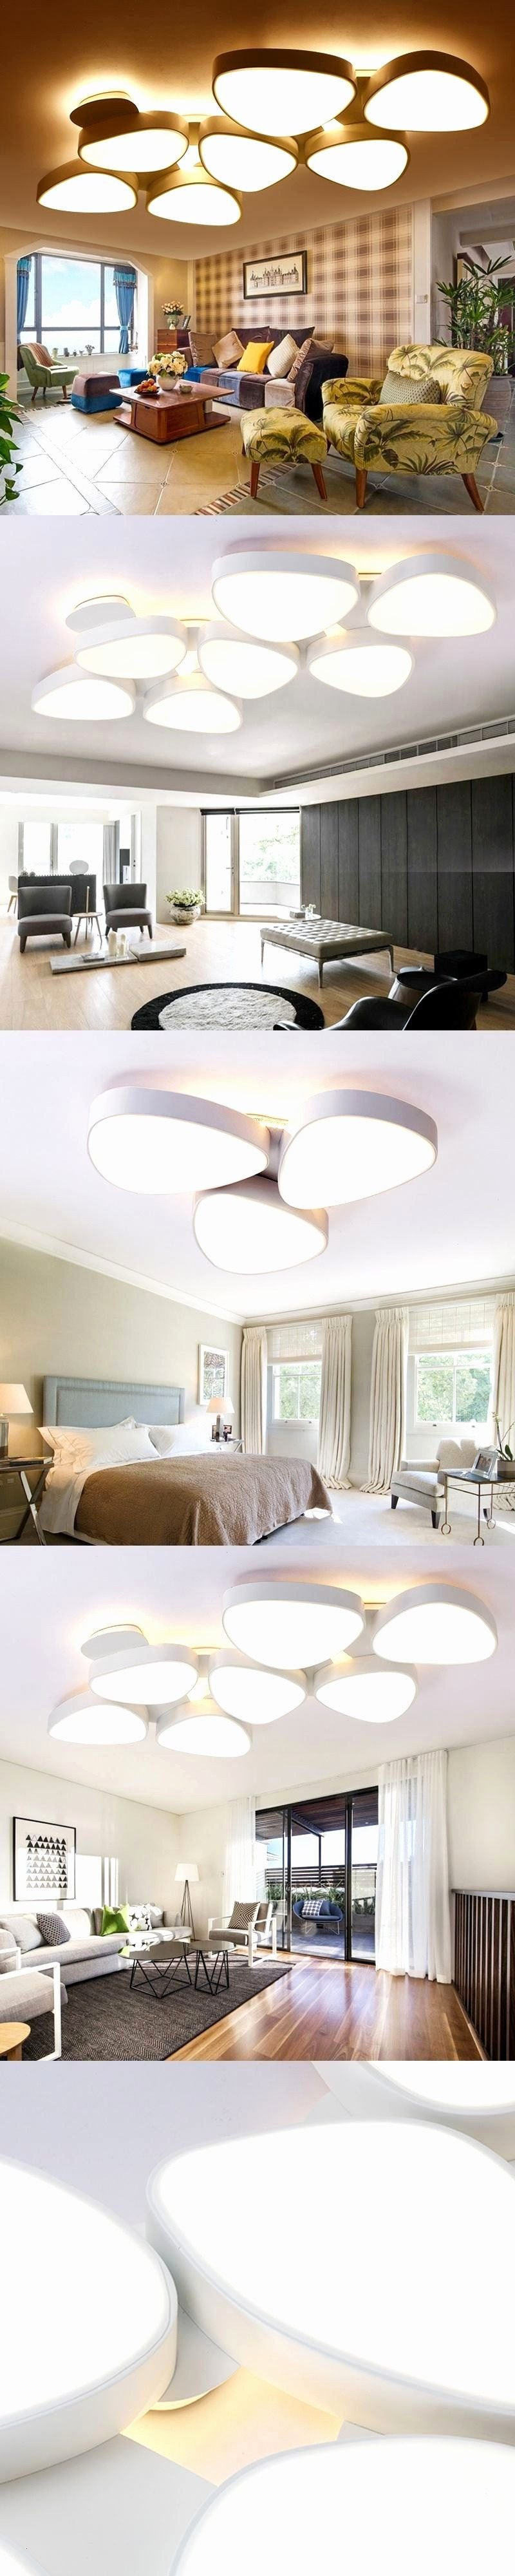 Small Chandeliers for Bedroom Fresh Flush Mount Chandelier Elegant Pendant Light Revit